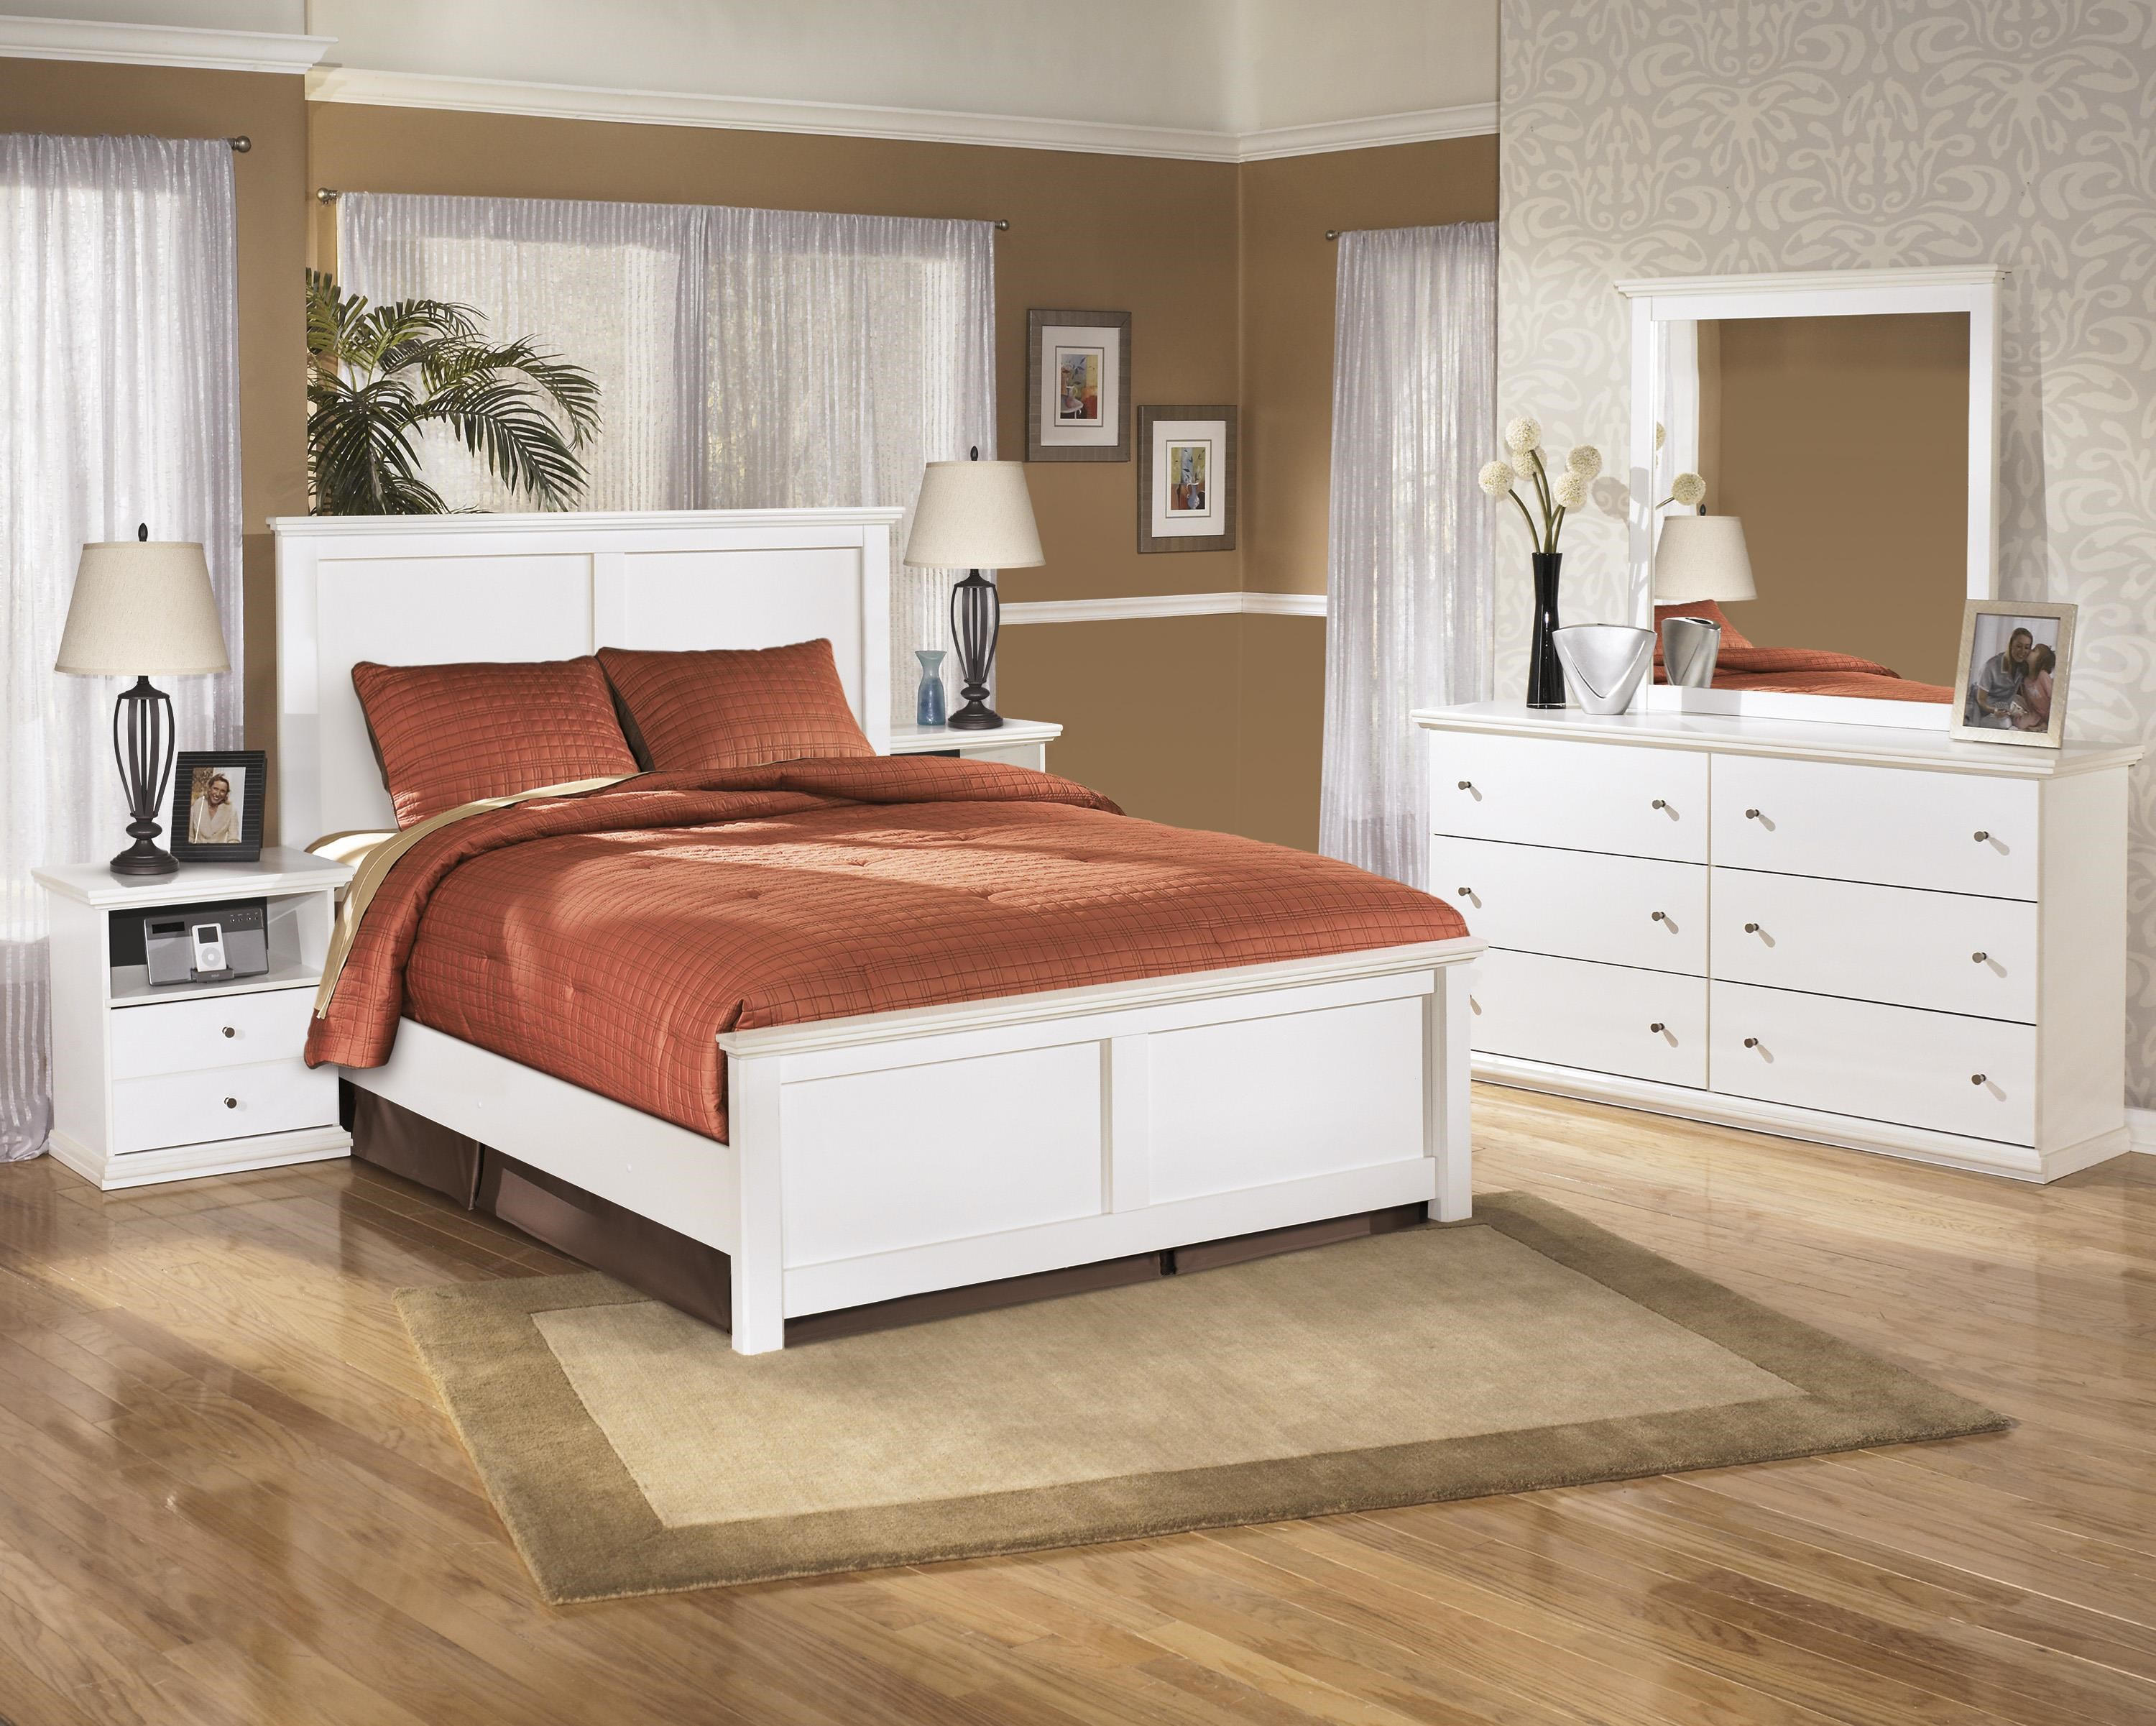 Full Panel Bed, Nightstand, Dresser and Mirr